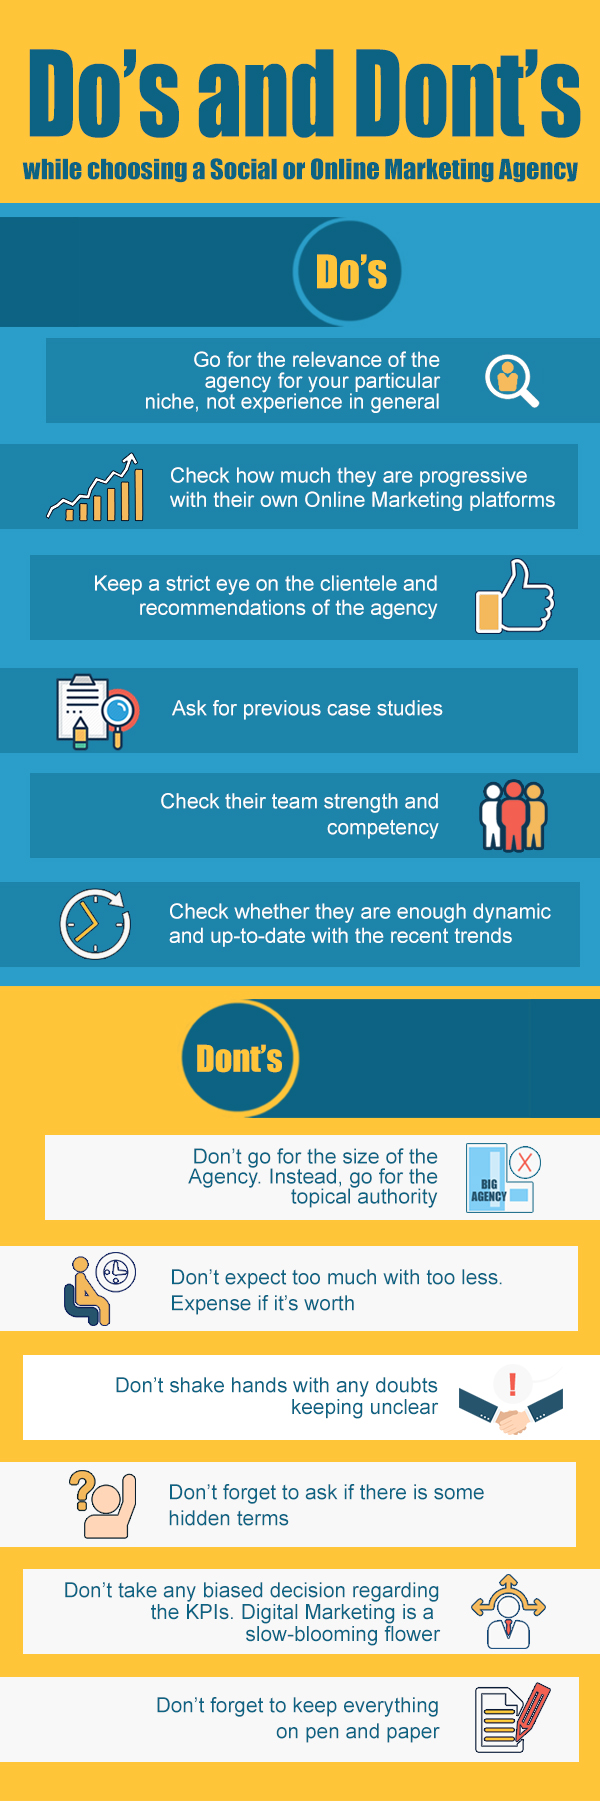 Do's and dont's while choosing a social or online marketing agency.